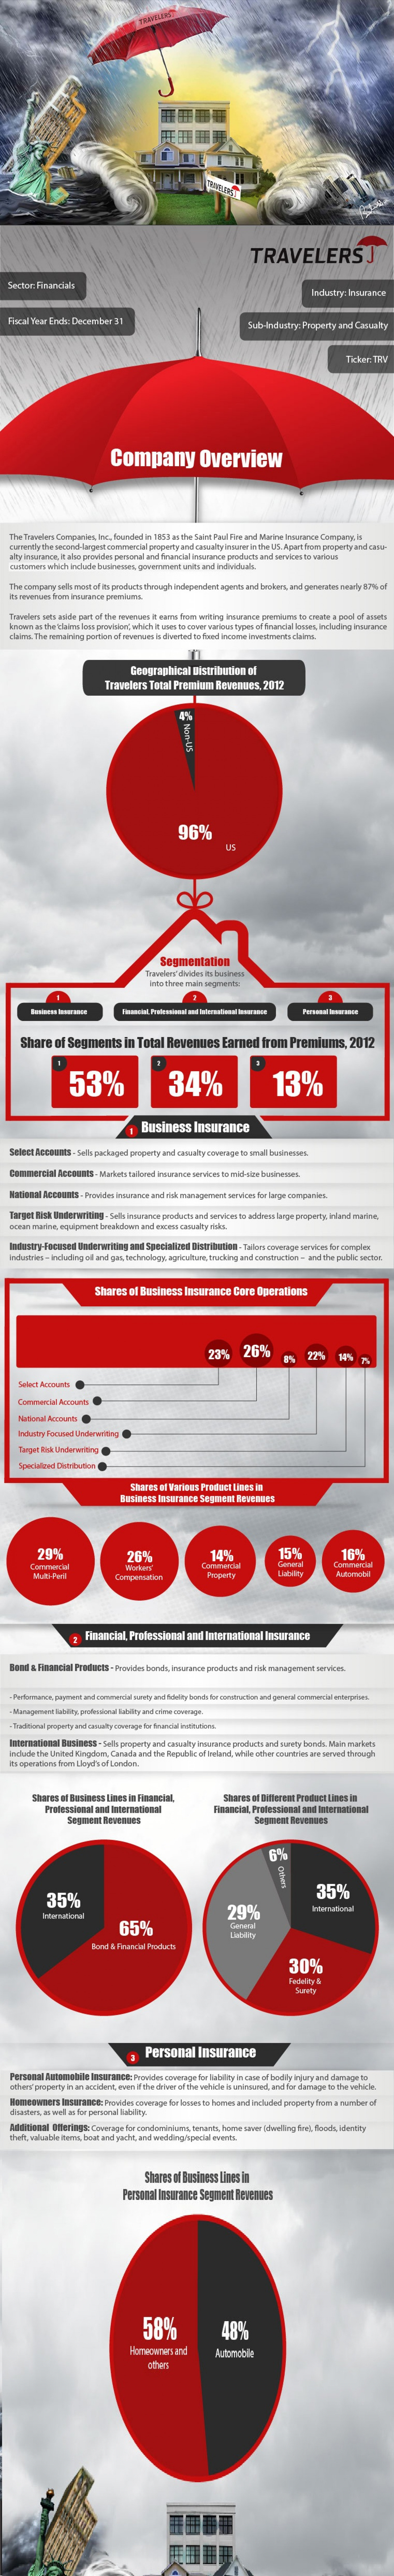 Travelers Companies (TRV) Company Description Infographic